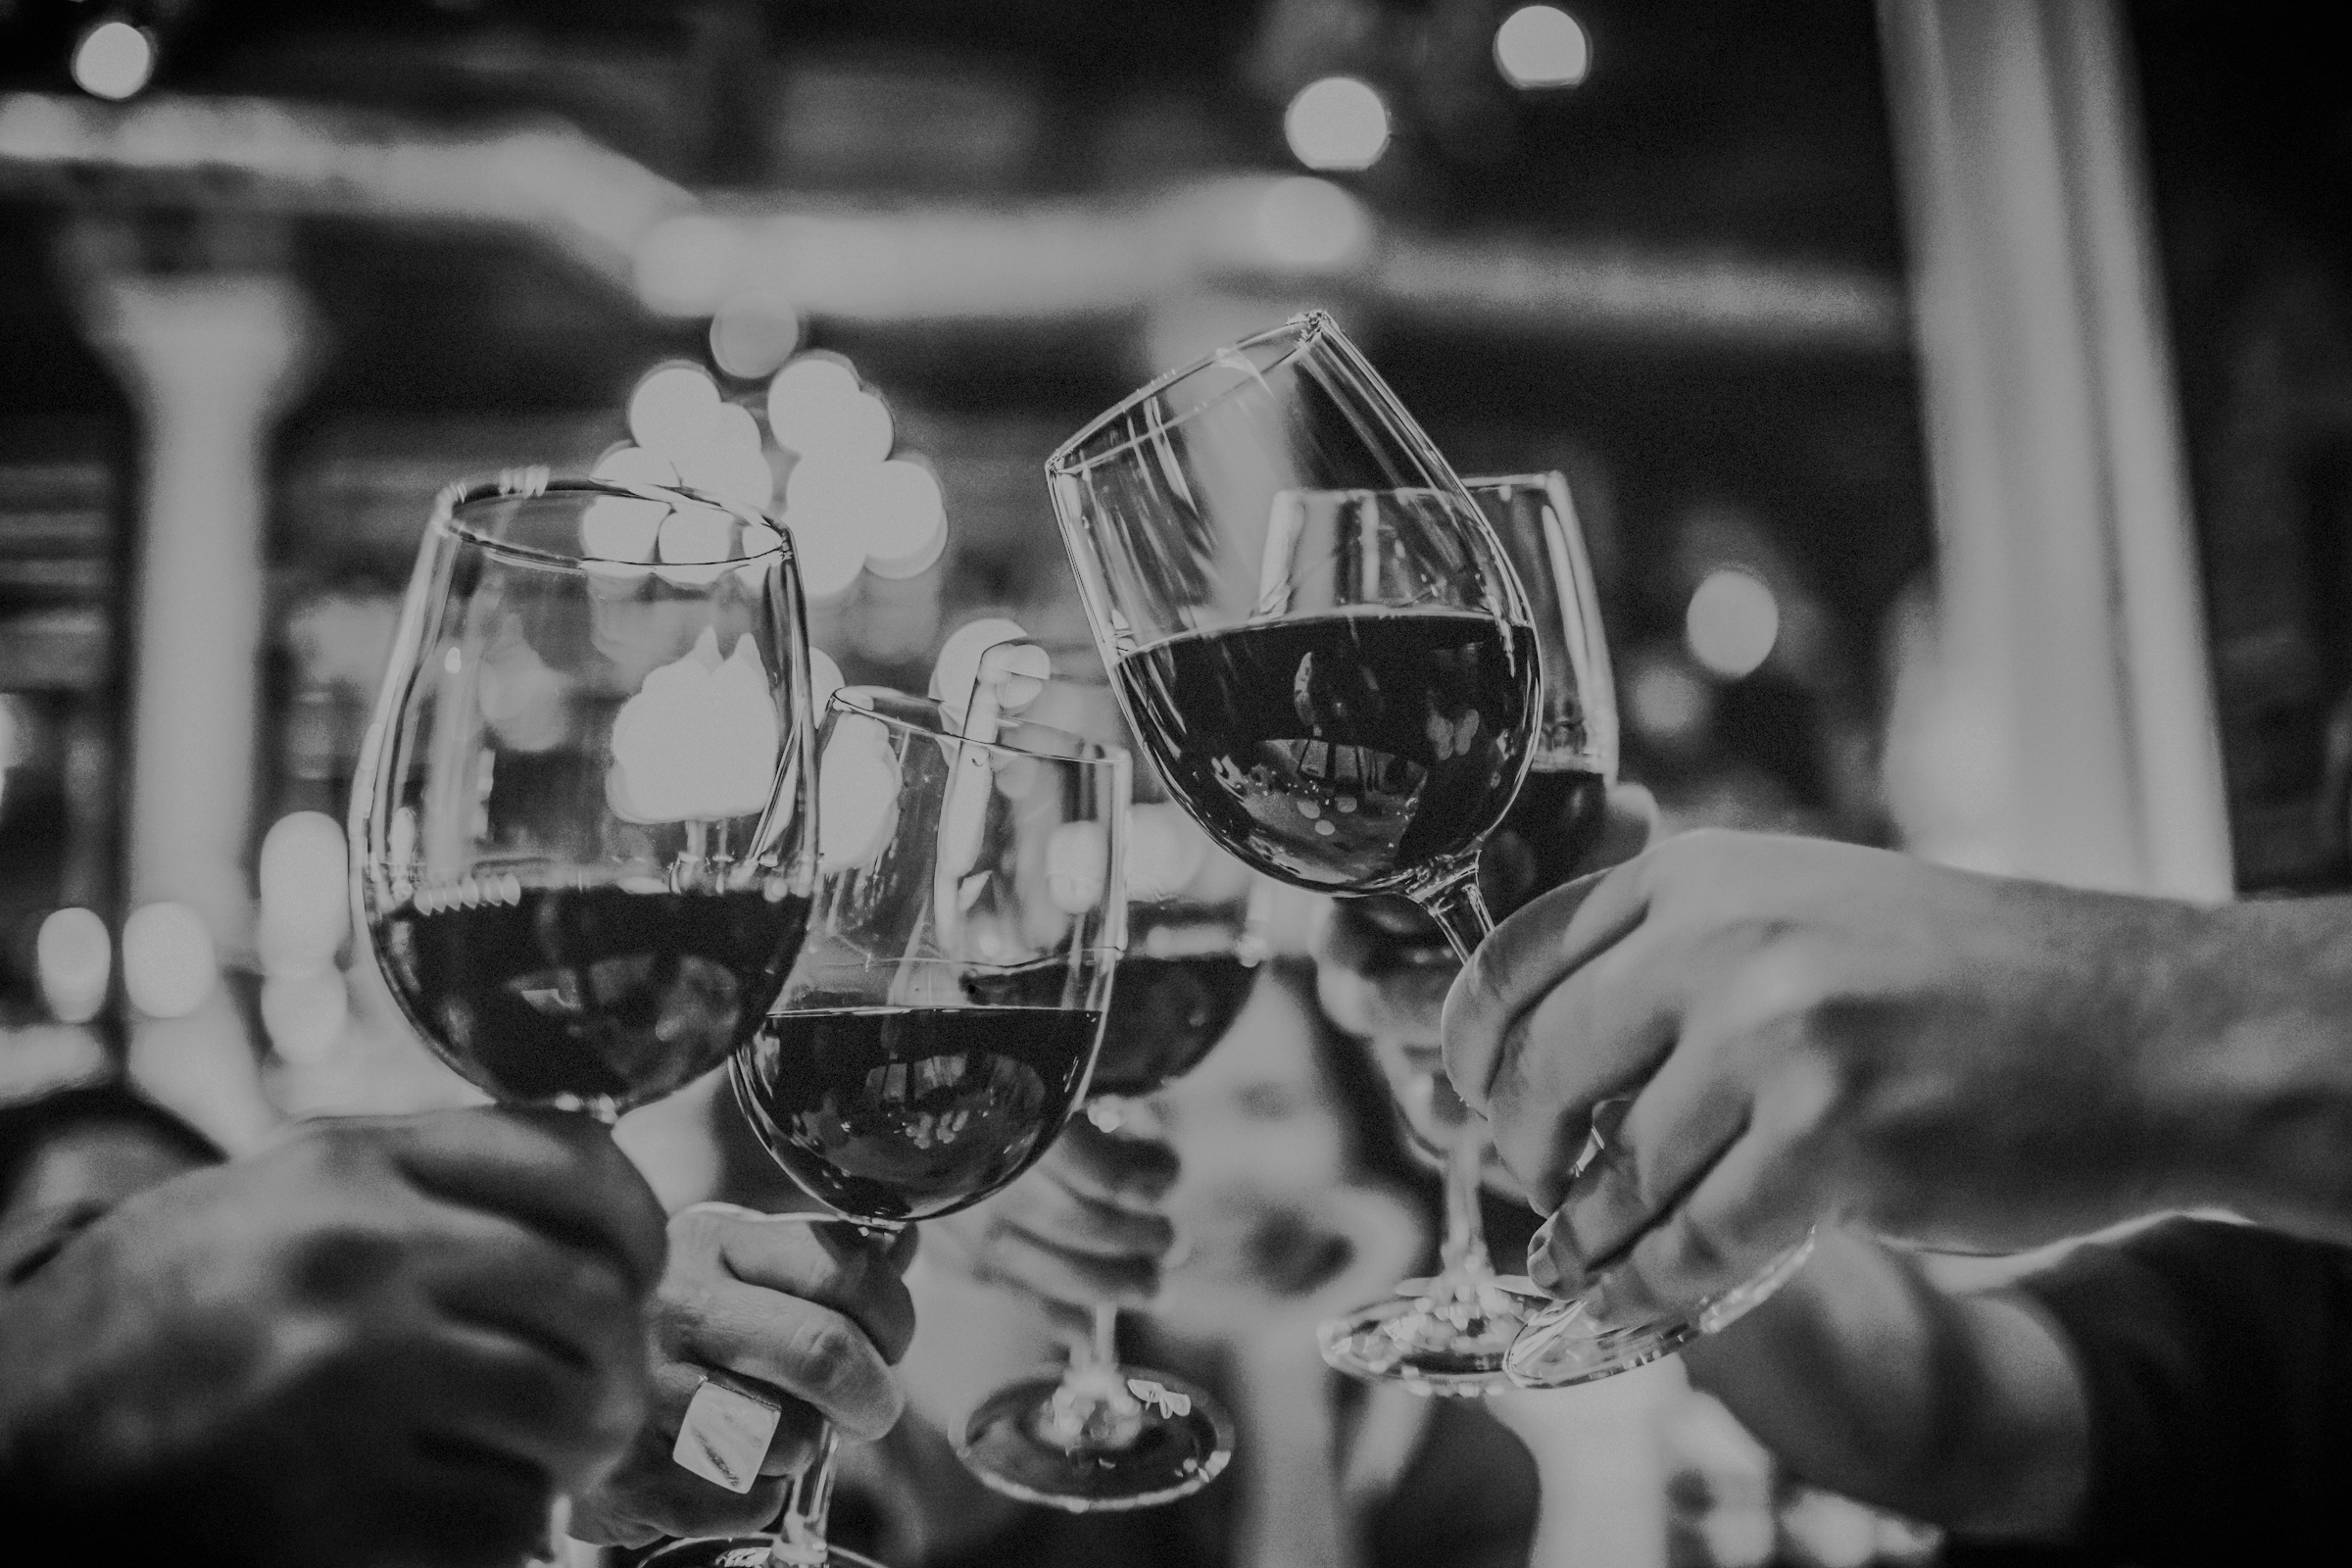 Wine Down Community Event - Friday, March 23 | 6-8 p.m. CTTHE TERRACE ROOMHARBOR GRAND HOTEL111 W WATER STREET, NEW BUFFALO, MI269.469.7950Cost: $25 per person (includes appetizers). Cash bar.Opportunity to sponsor a faculty member's ticket available.